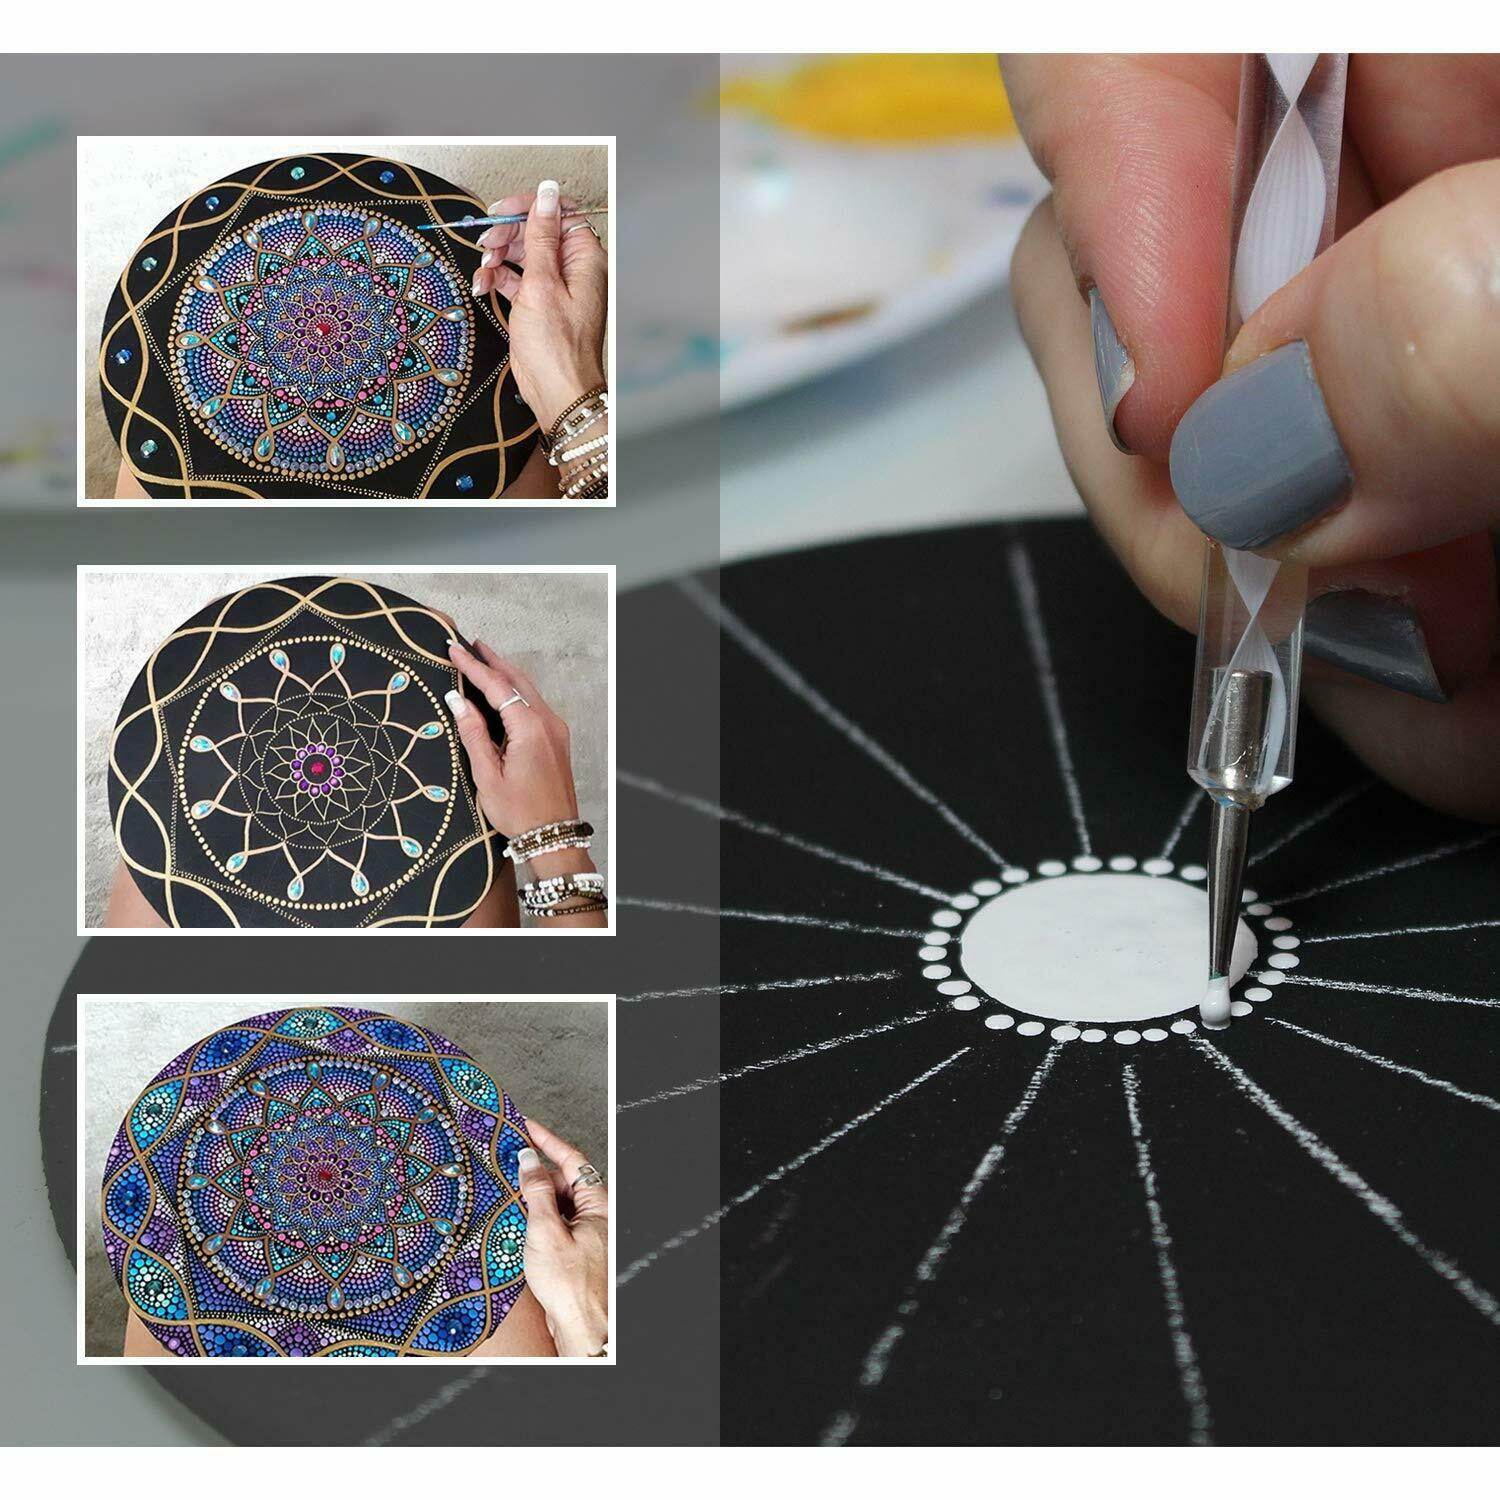 27 PCS Kits Stencil Painting Tools for Canvas Rocks Crafting and Drafting Art Supplies with Gemstone Sticker White Pencil Outline Brush Black Canvas Plastic Bracket Mandala Dotting Tools